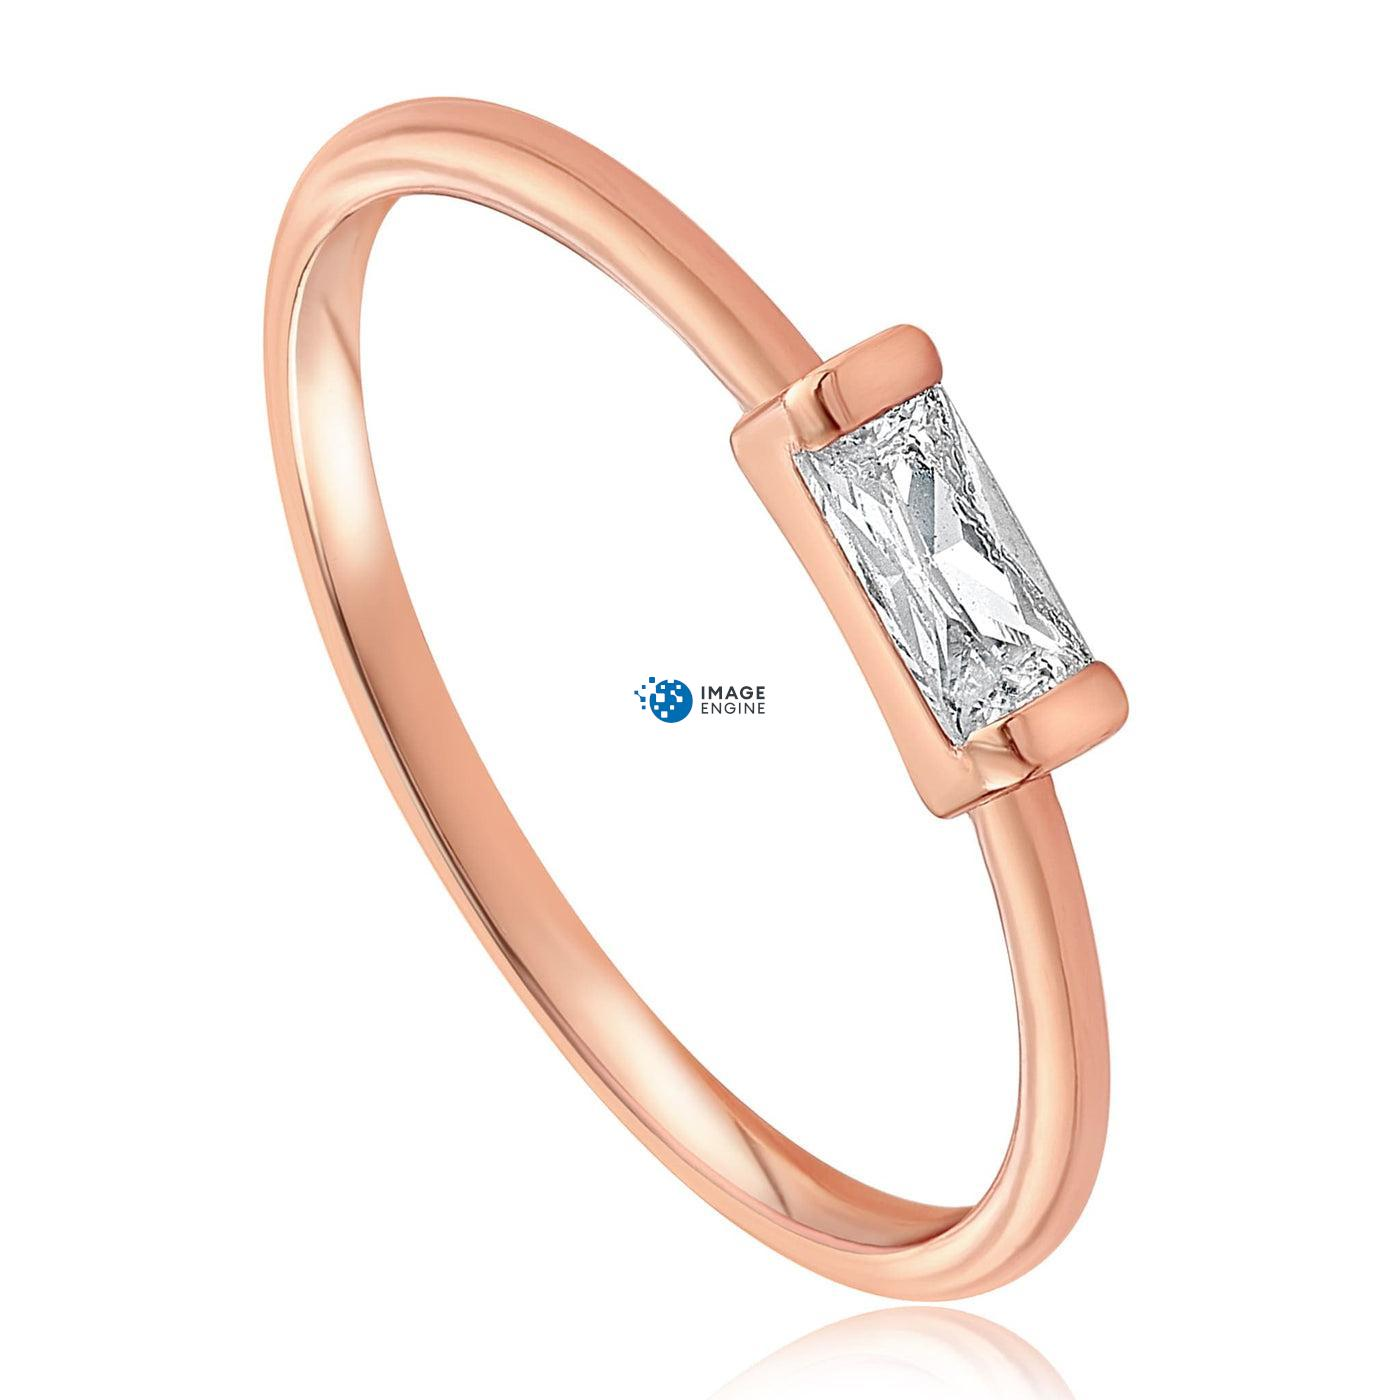 Moonie Glass Geometric Ring - Three Quarter View - 18K Rose Gold Vermeil